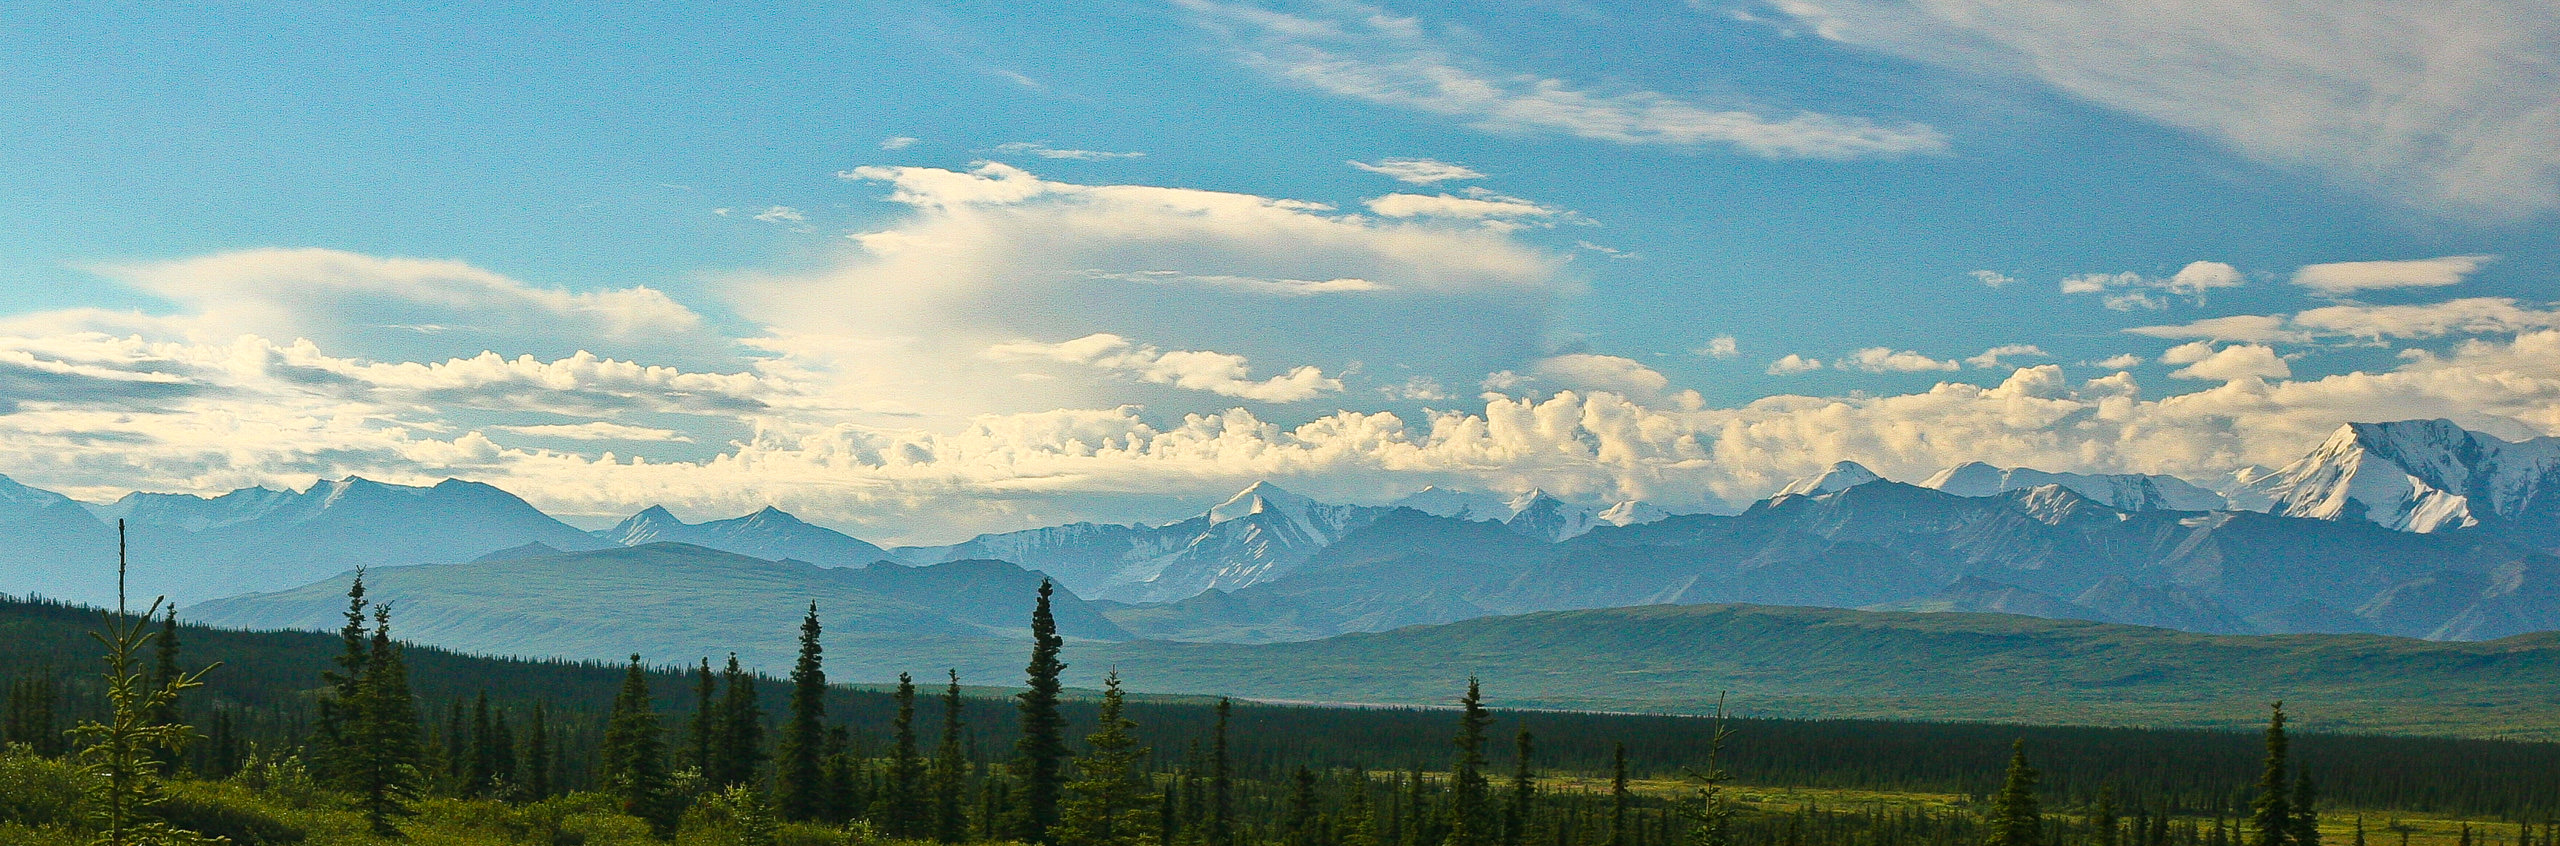 Elopement photographer backpacking in Denali National Park.